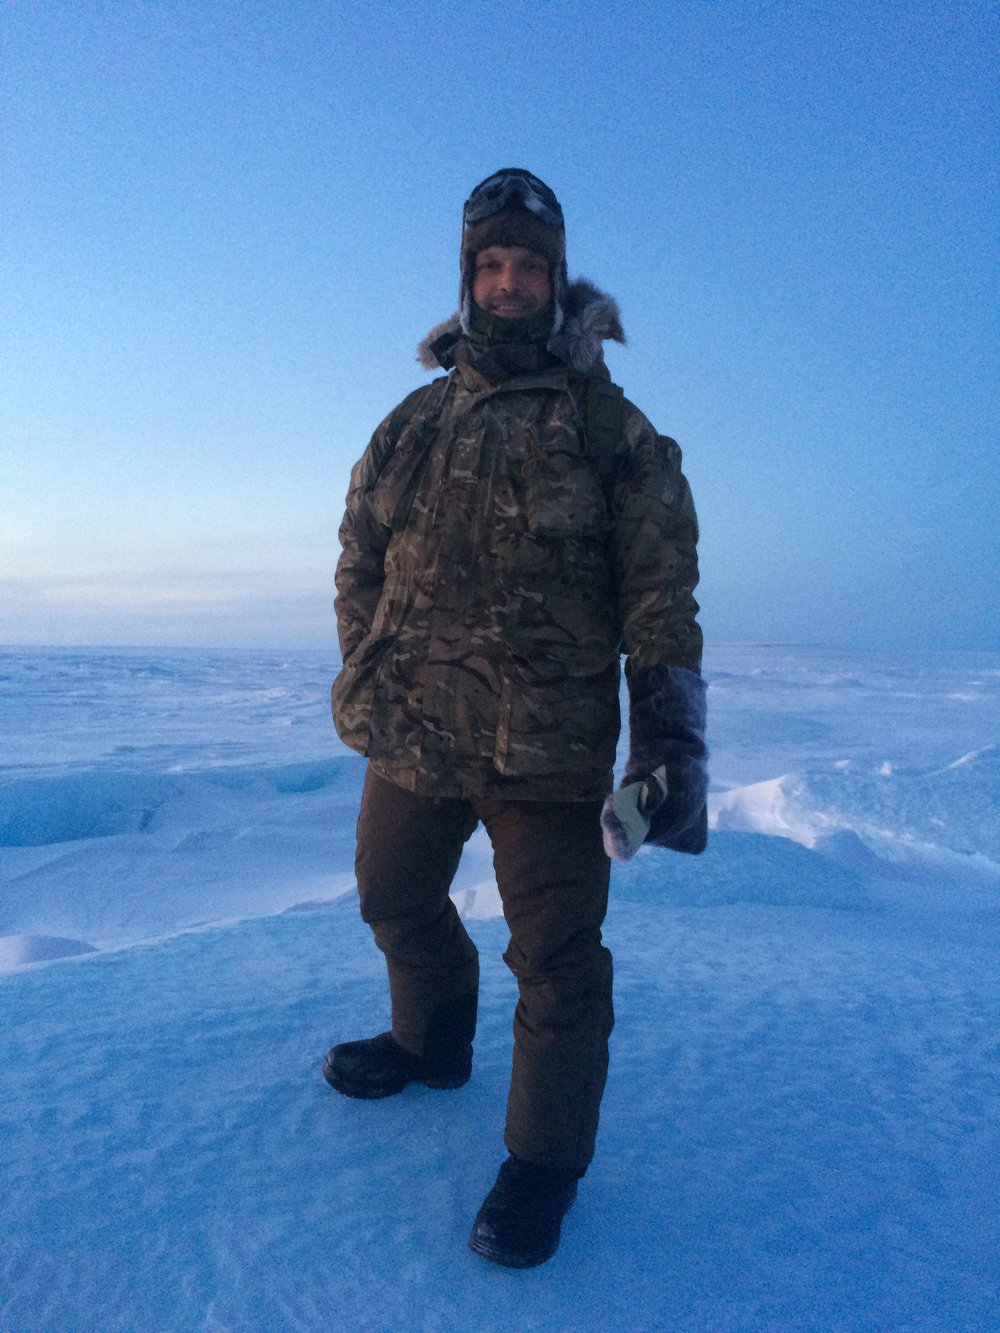 John Hudson wearing Carinthia ECIG (plus UK Mil Smock) stood on the frozen sea of Canada's North West Passage at -65 C (-85F)